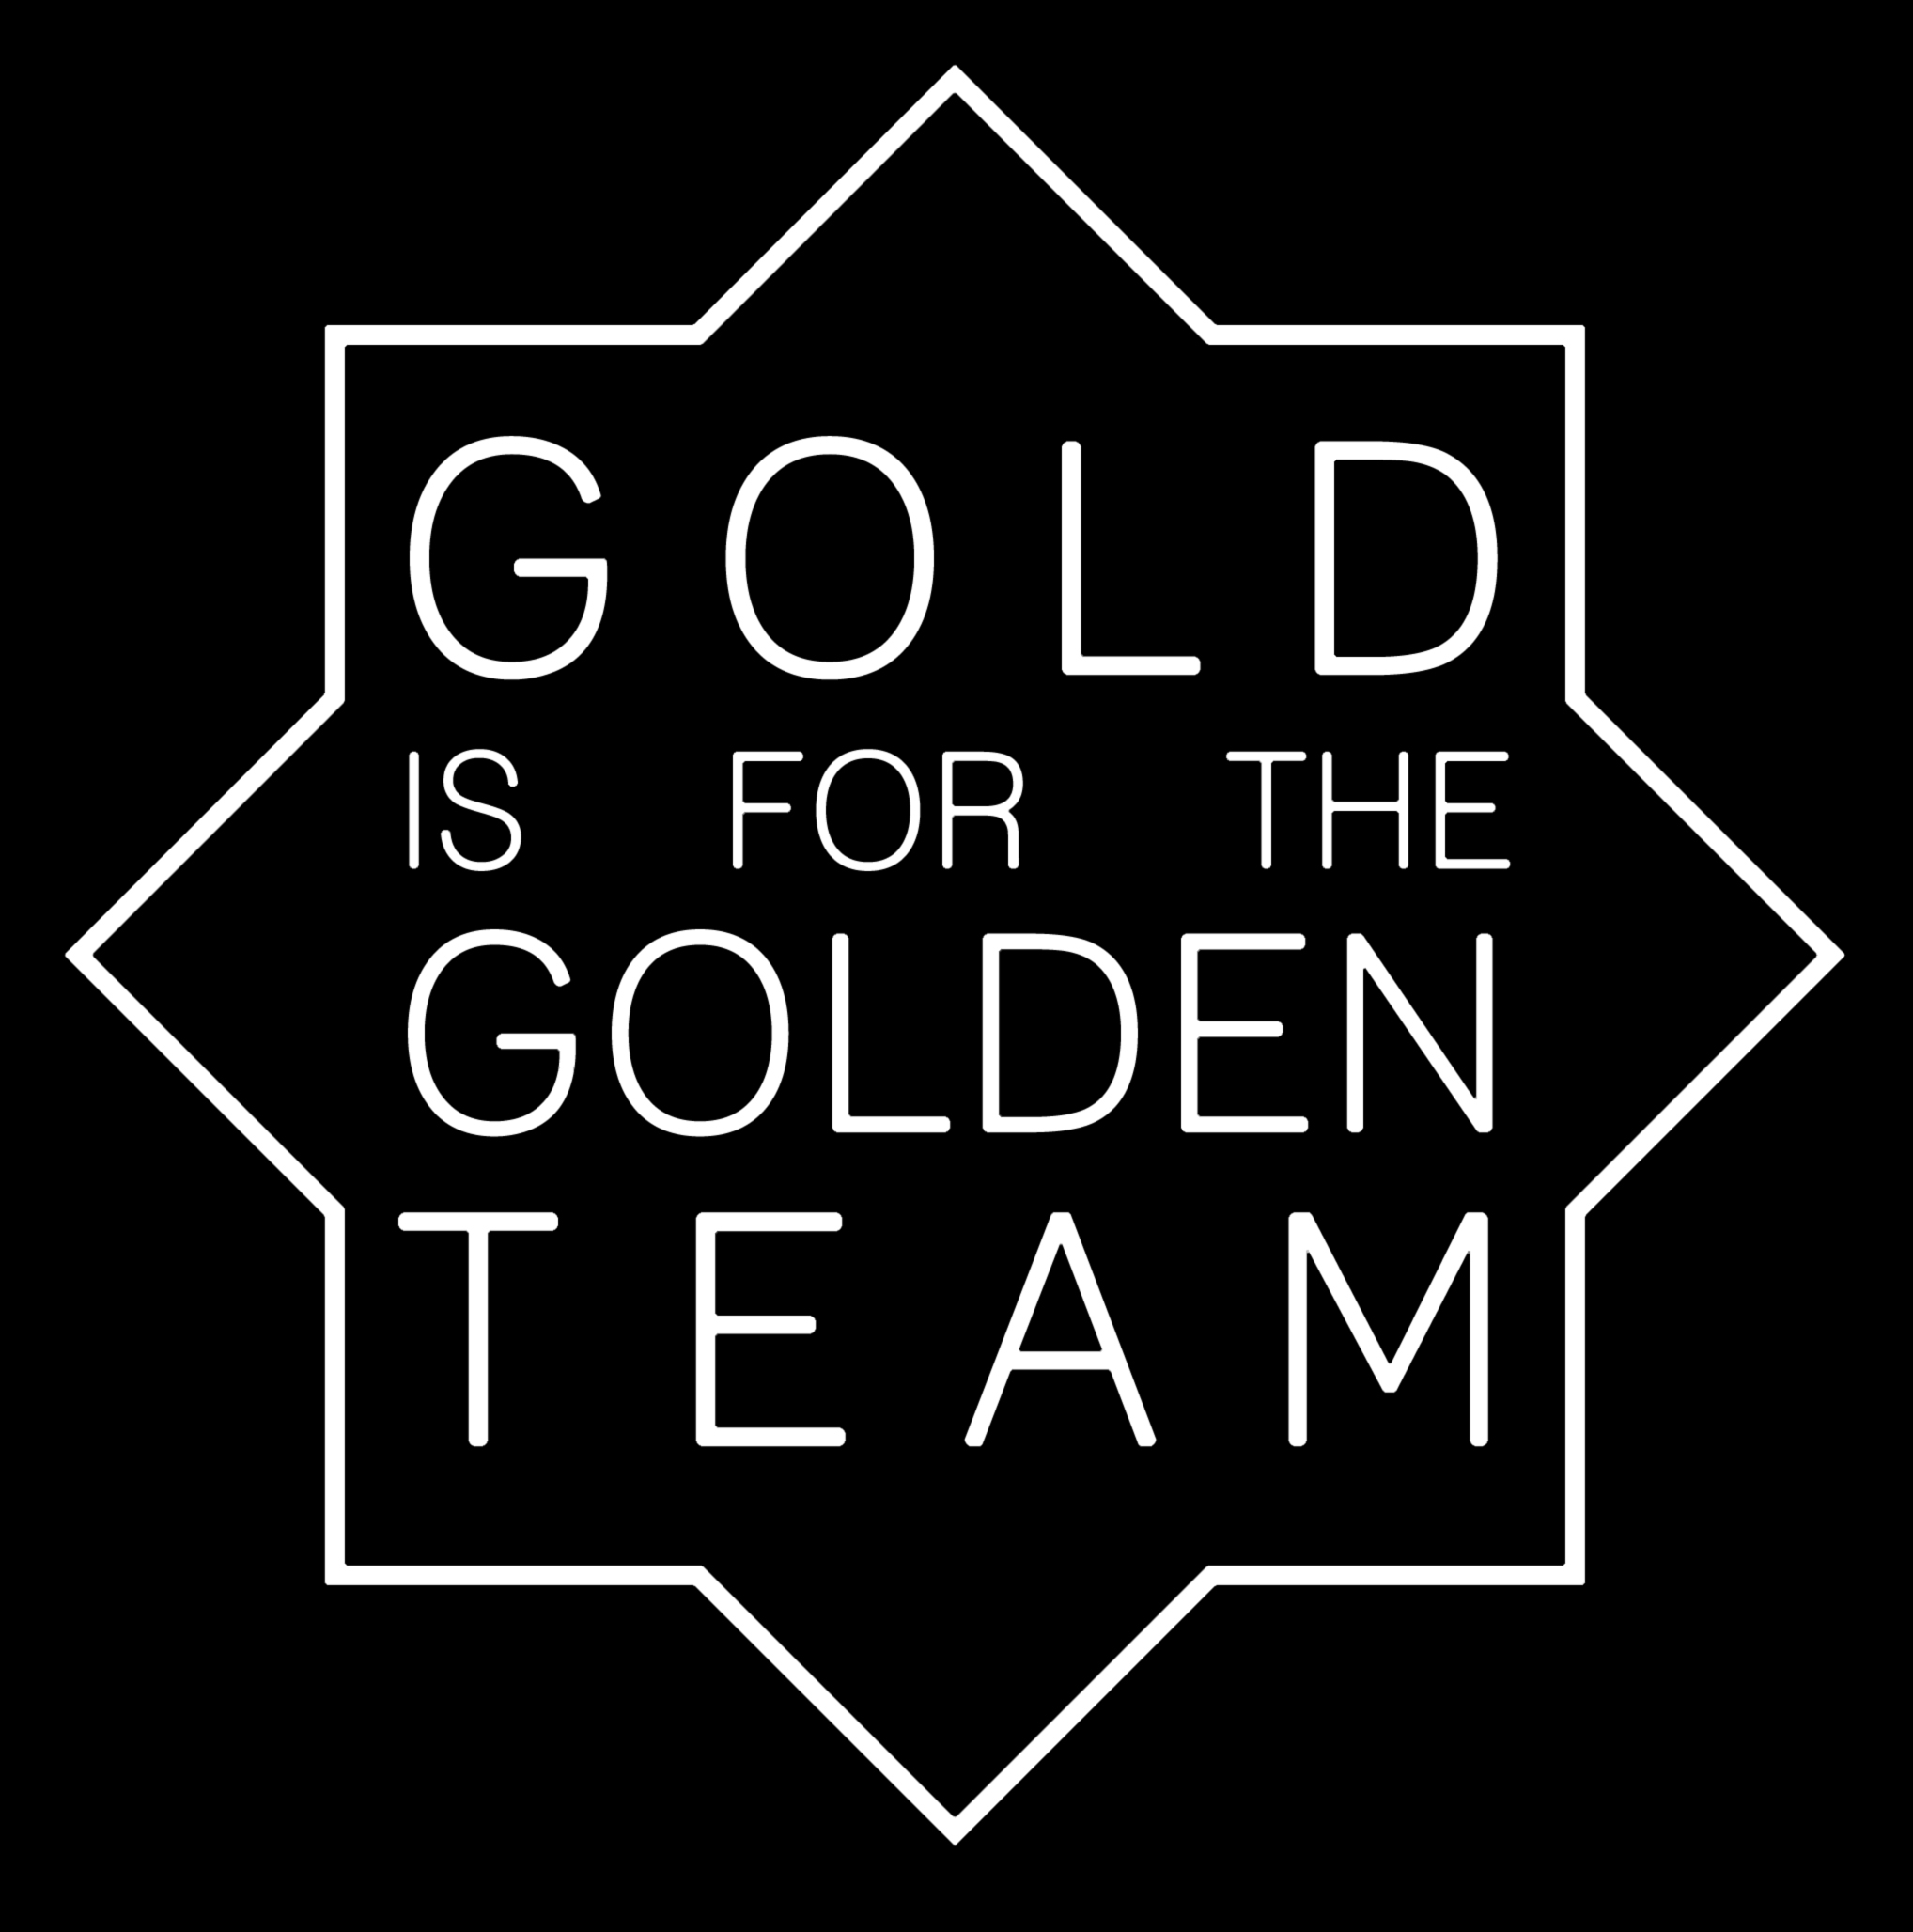 Golden team logo black